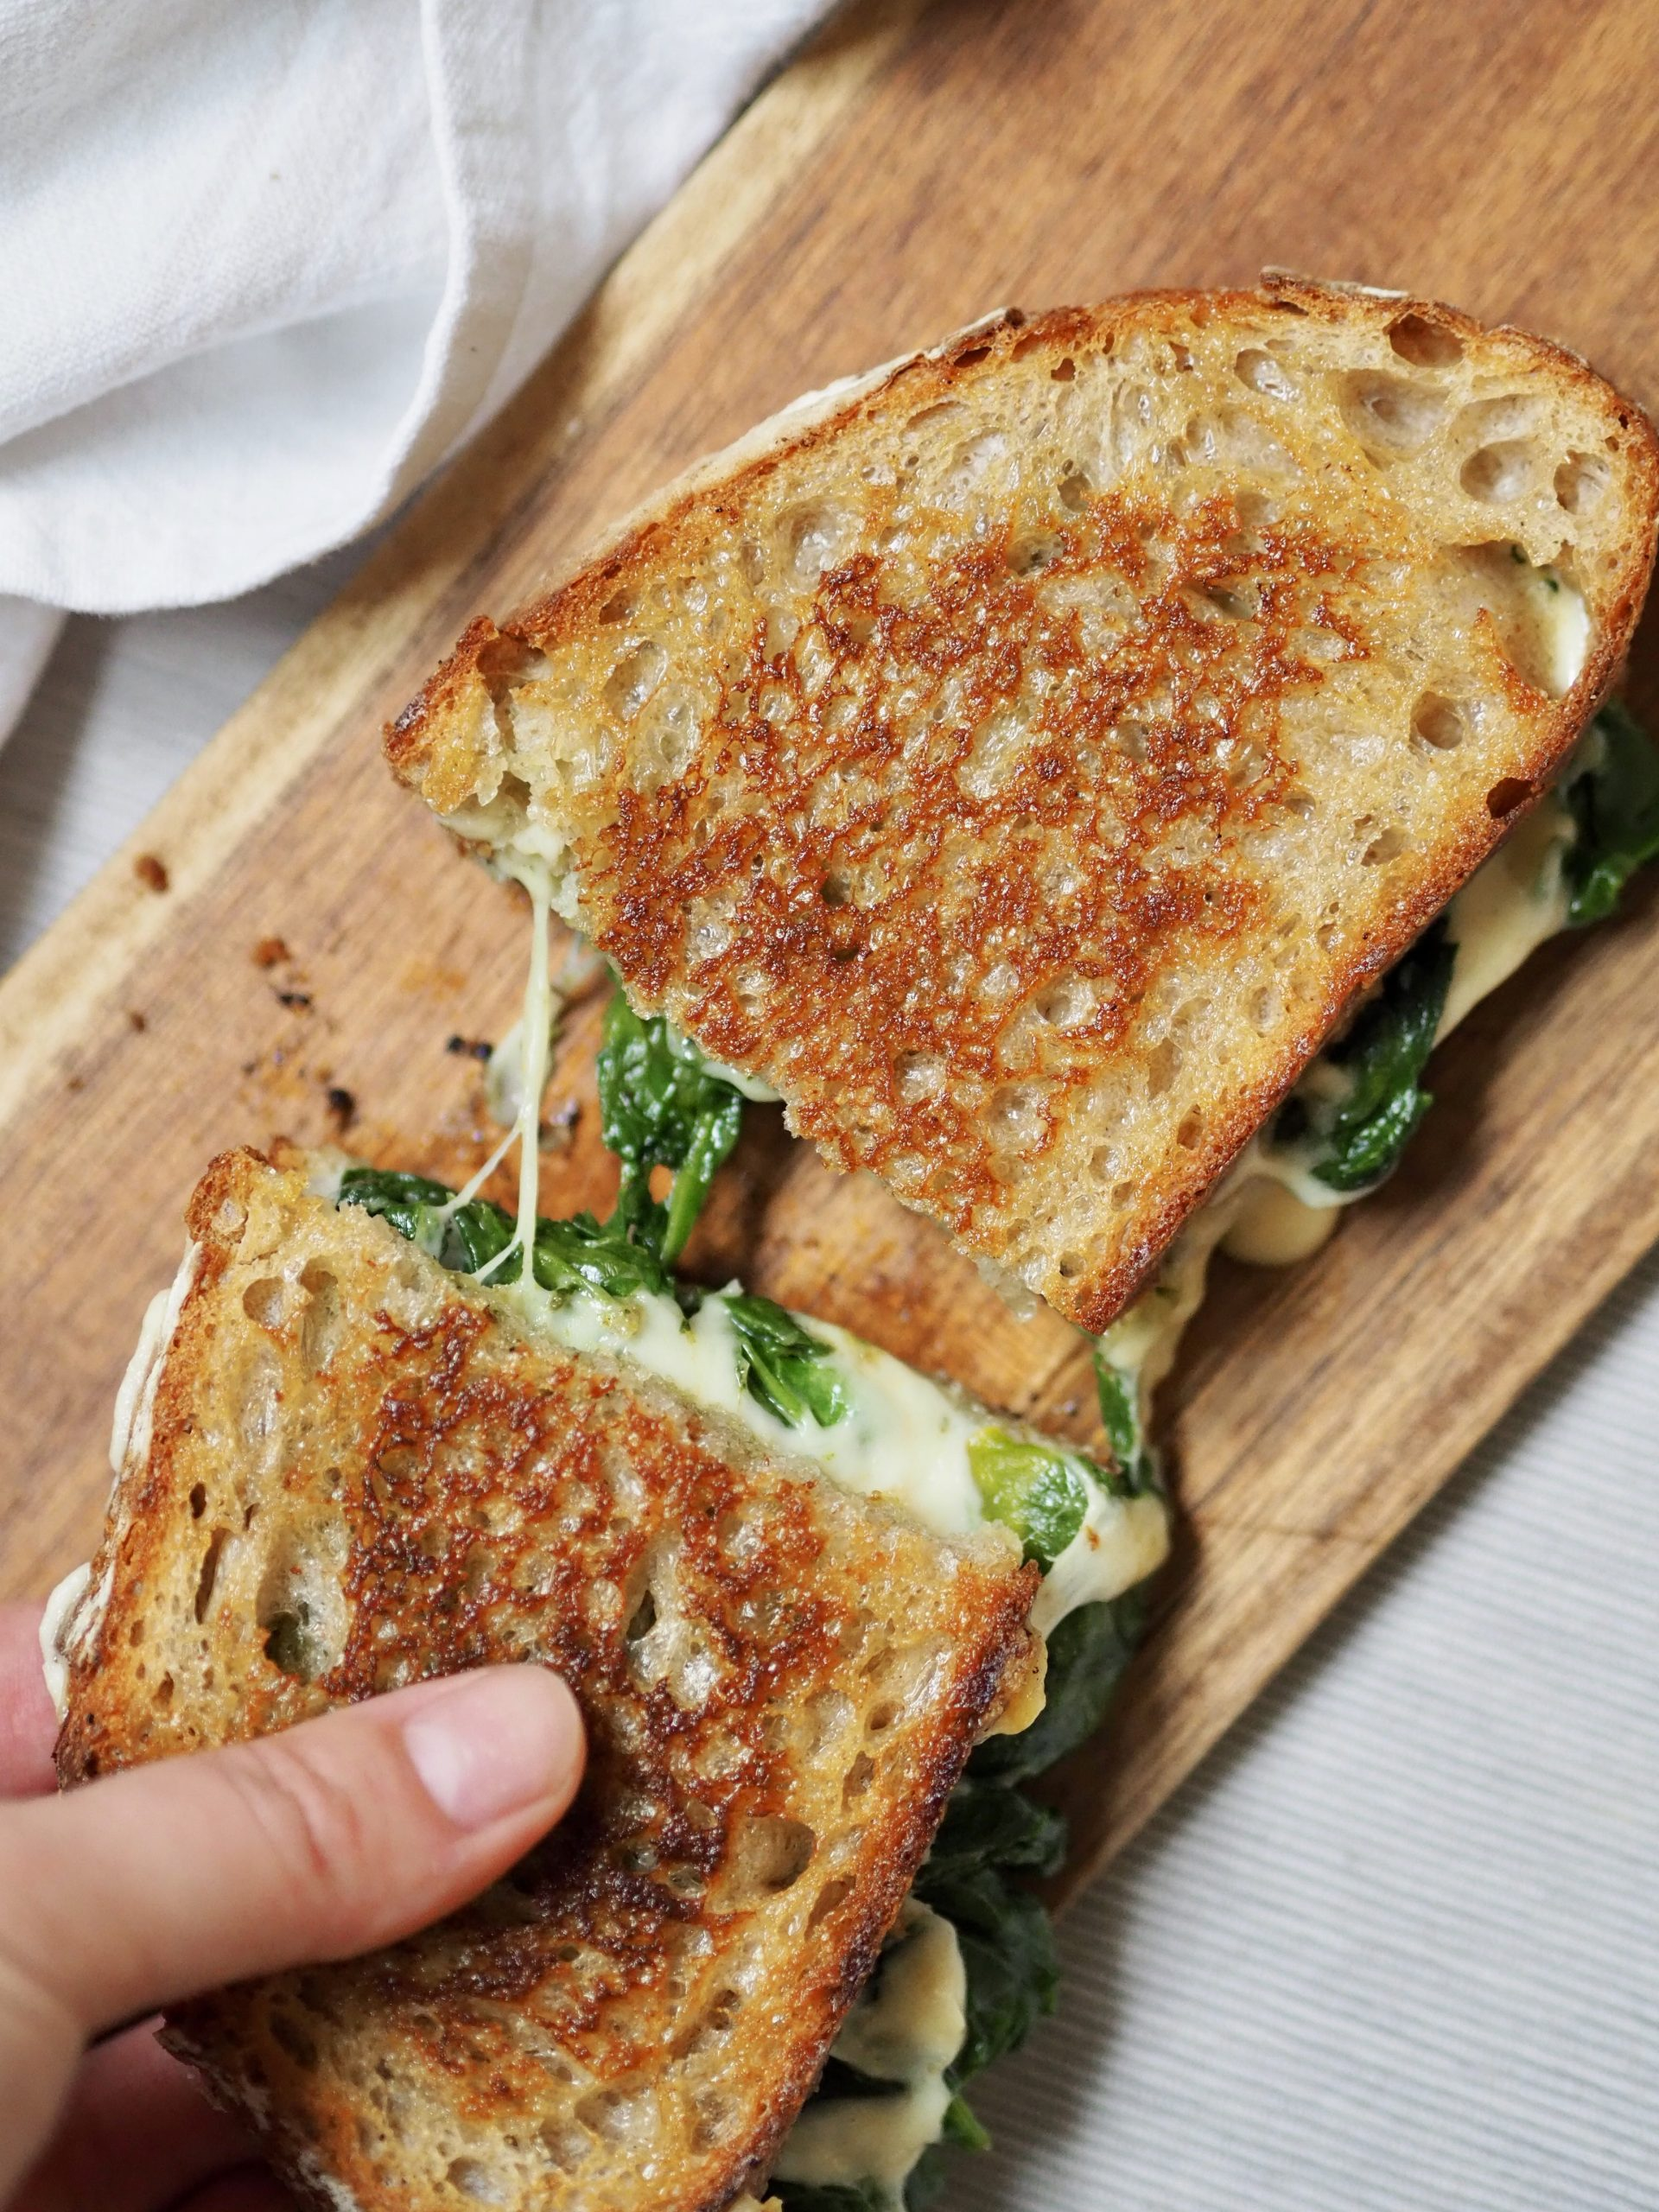 Grilled cheese épinards et pesto